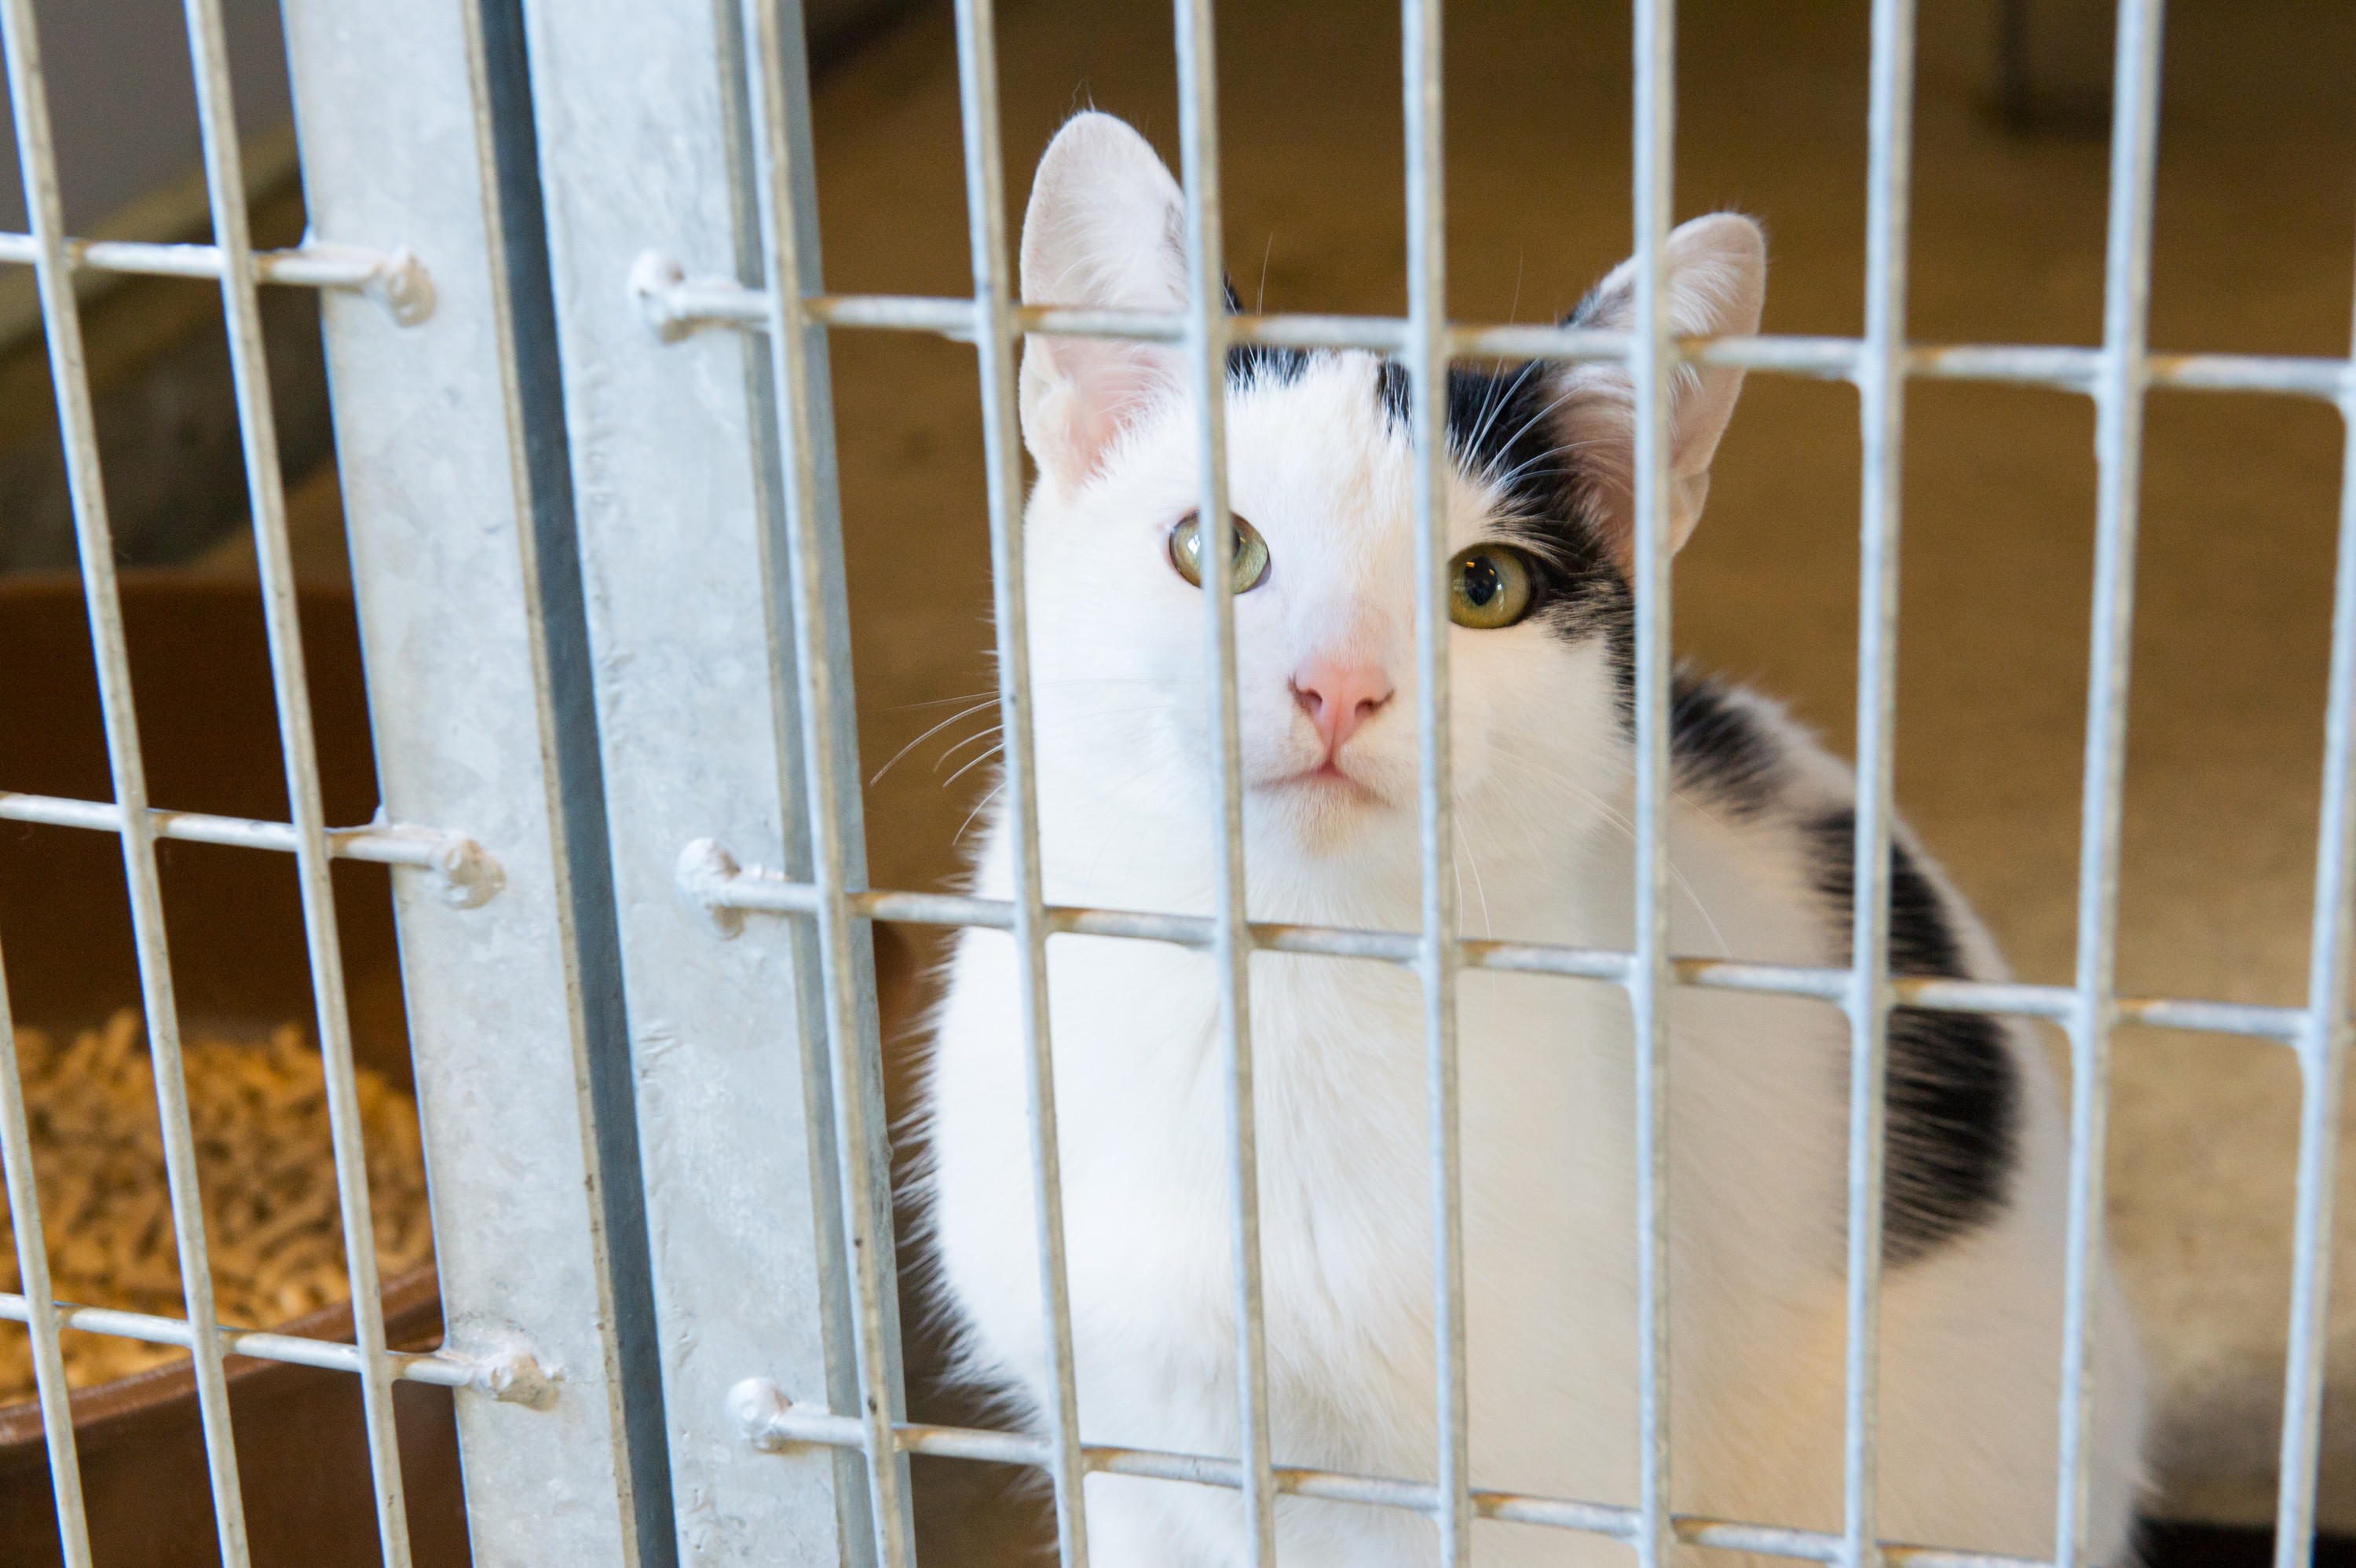 Animal Shelter Campaign Gets Closer To $1.5M Goal